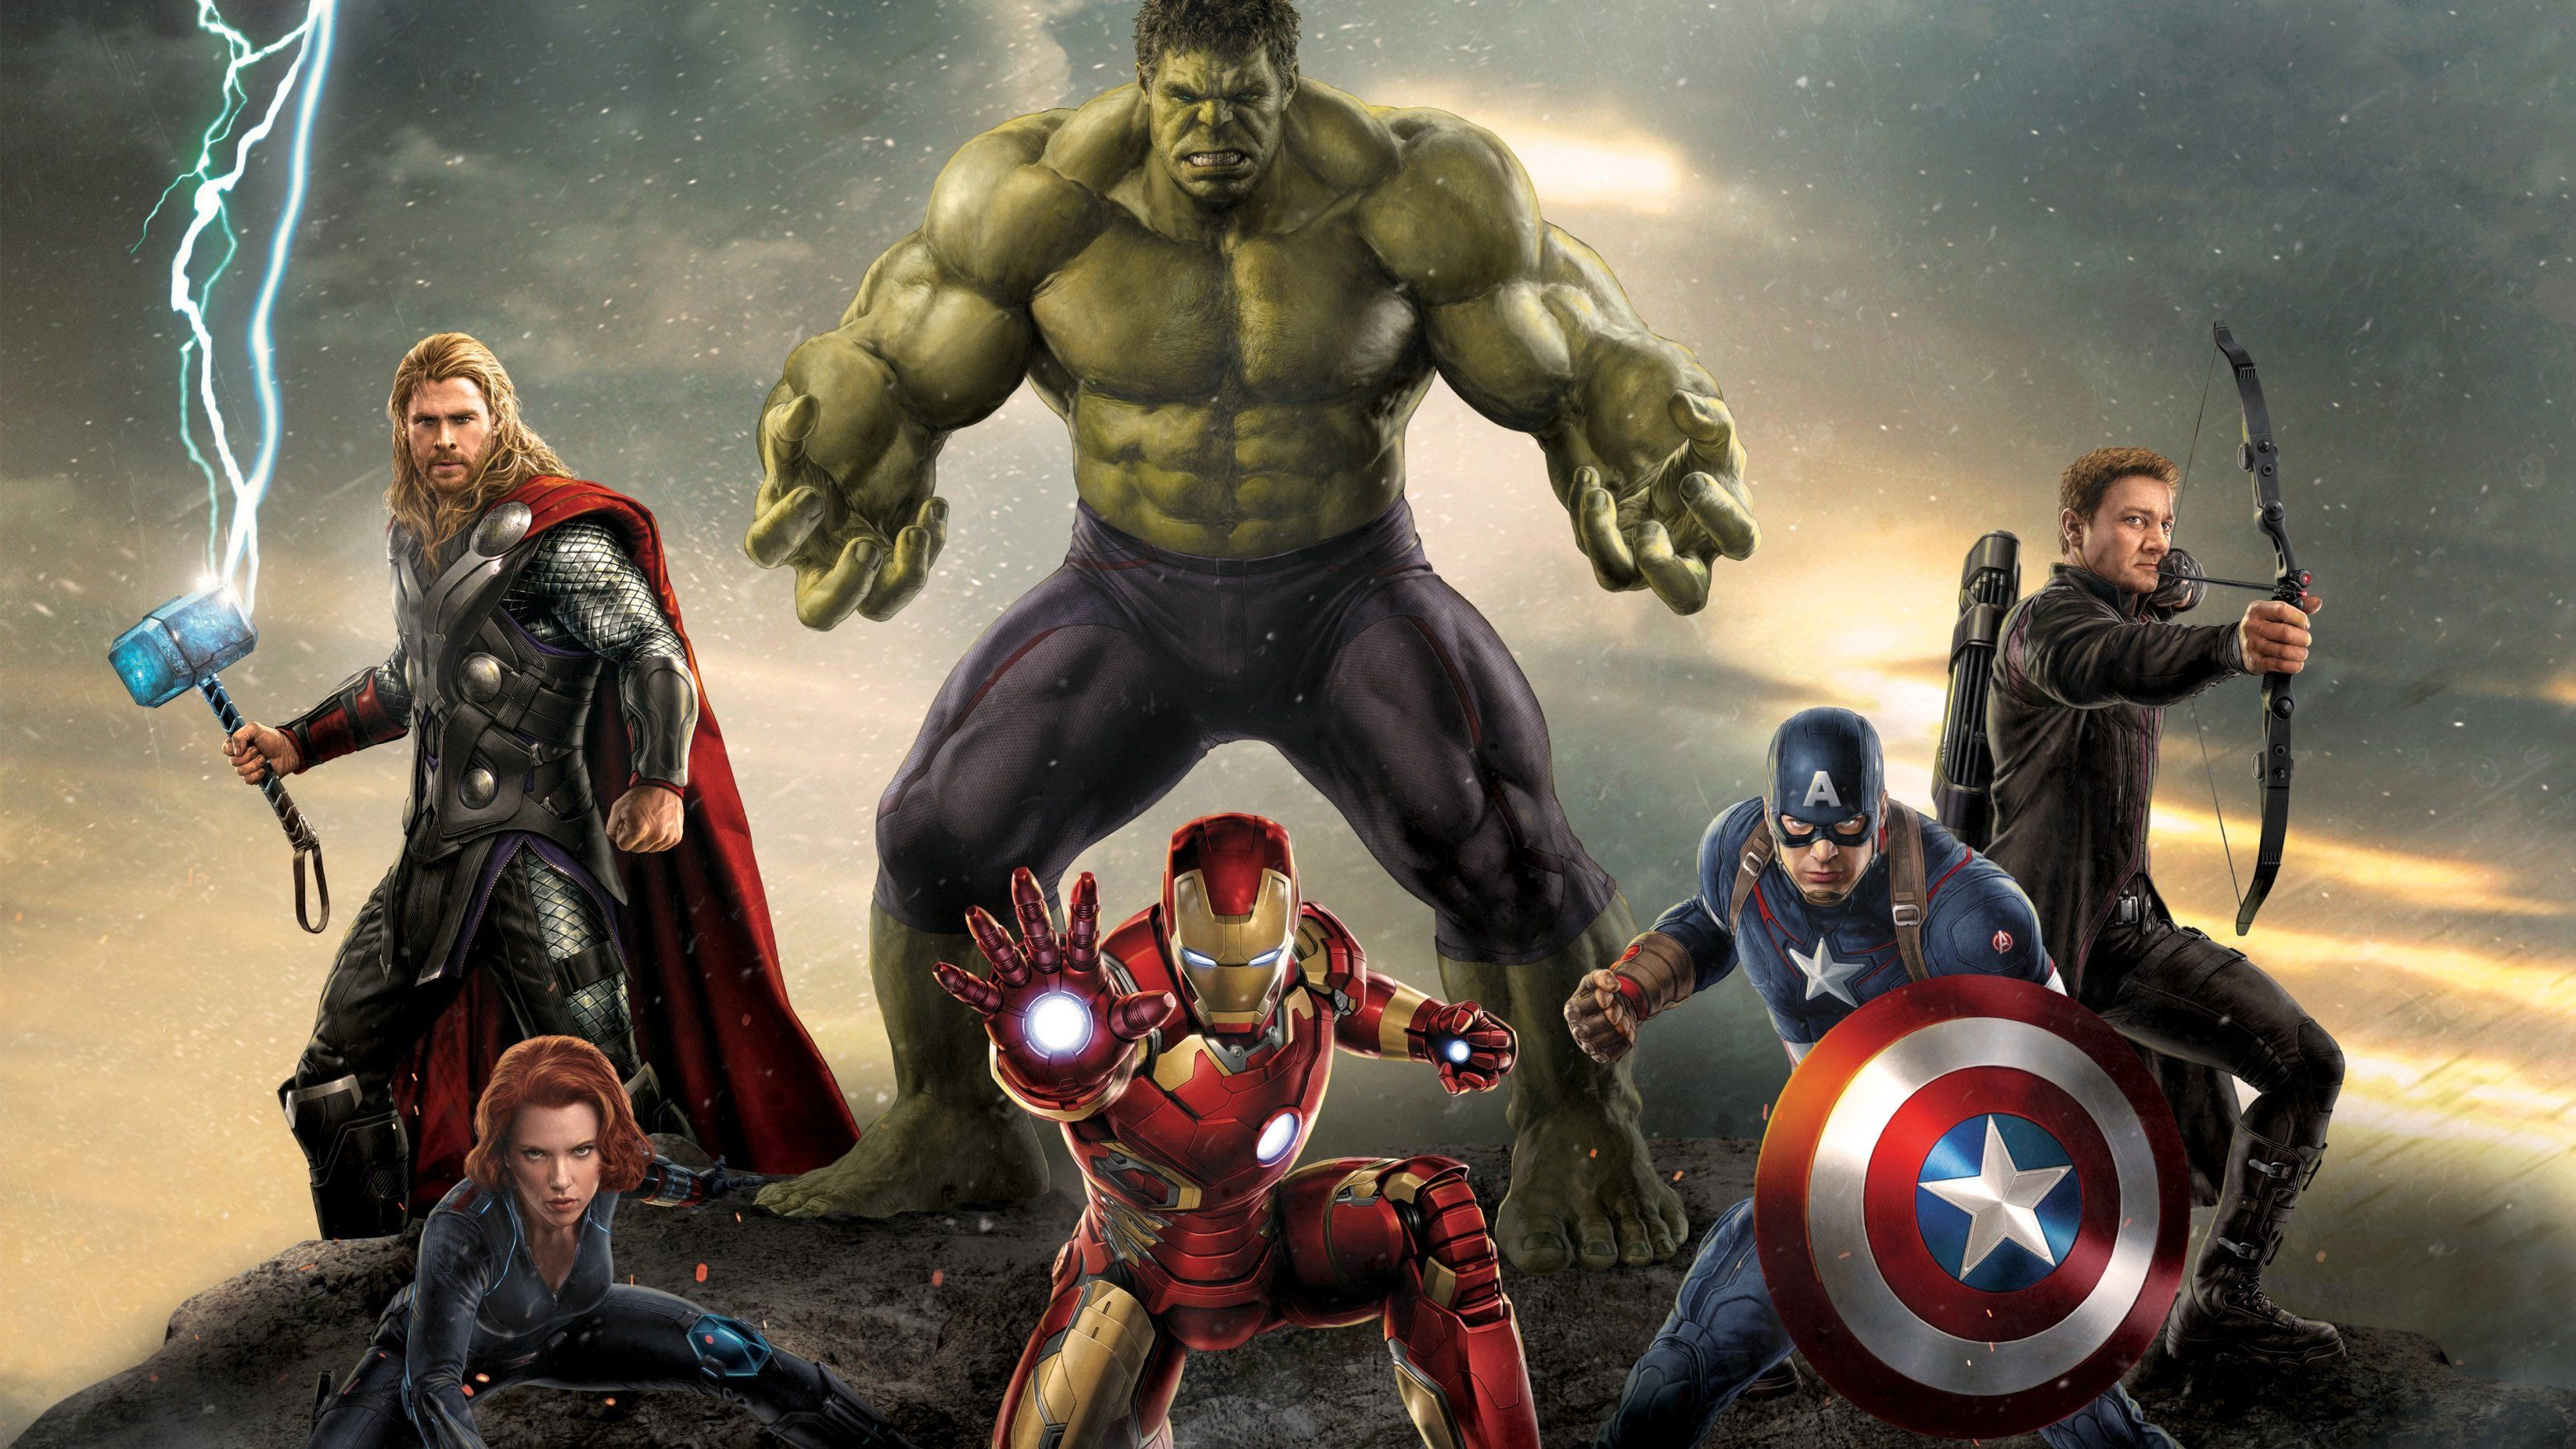 Pasá lince! Wallpapers full HD (With images) Avengers